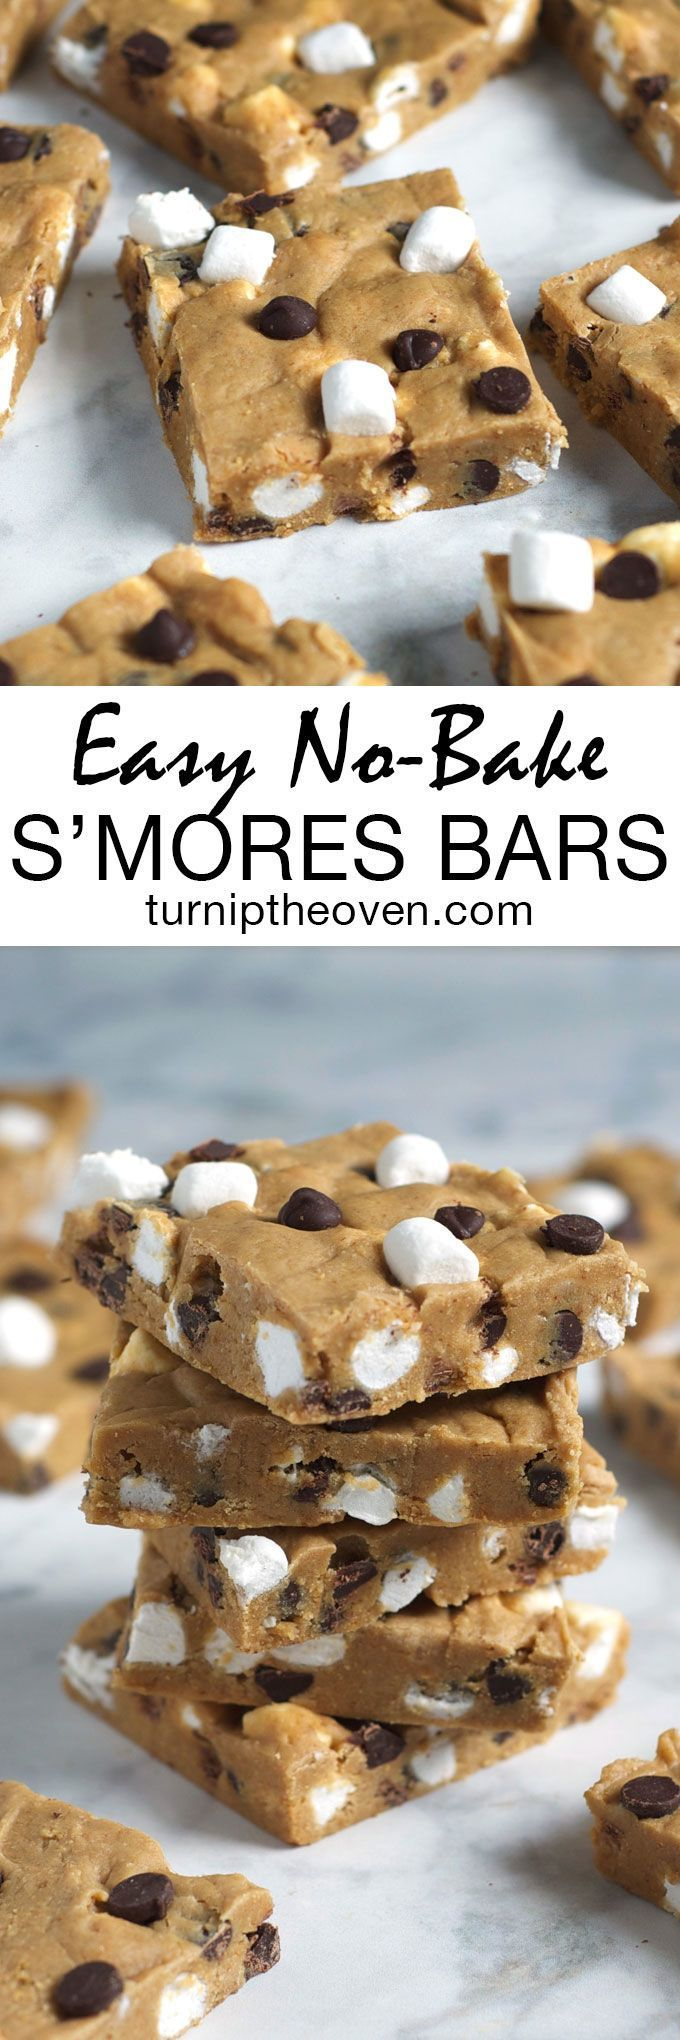 These easy no-bake s'mores are like a cross between cookie dough, fudge, and everyone's favorite campfire dessert! All you need is 10 minutes and 9 simple ingredients! (No Bake Christmas Candy)